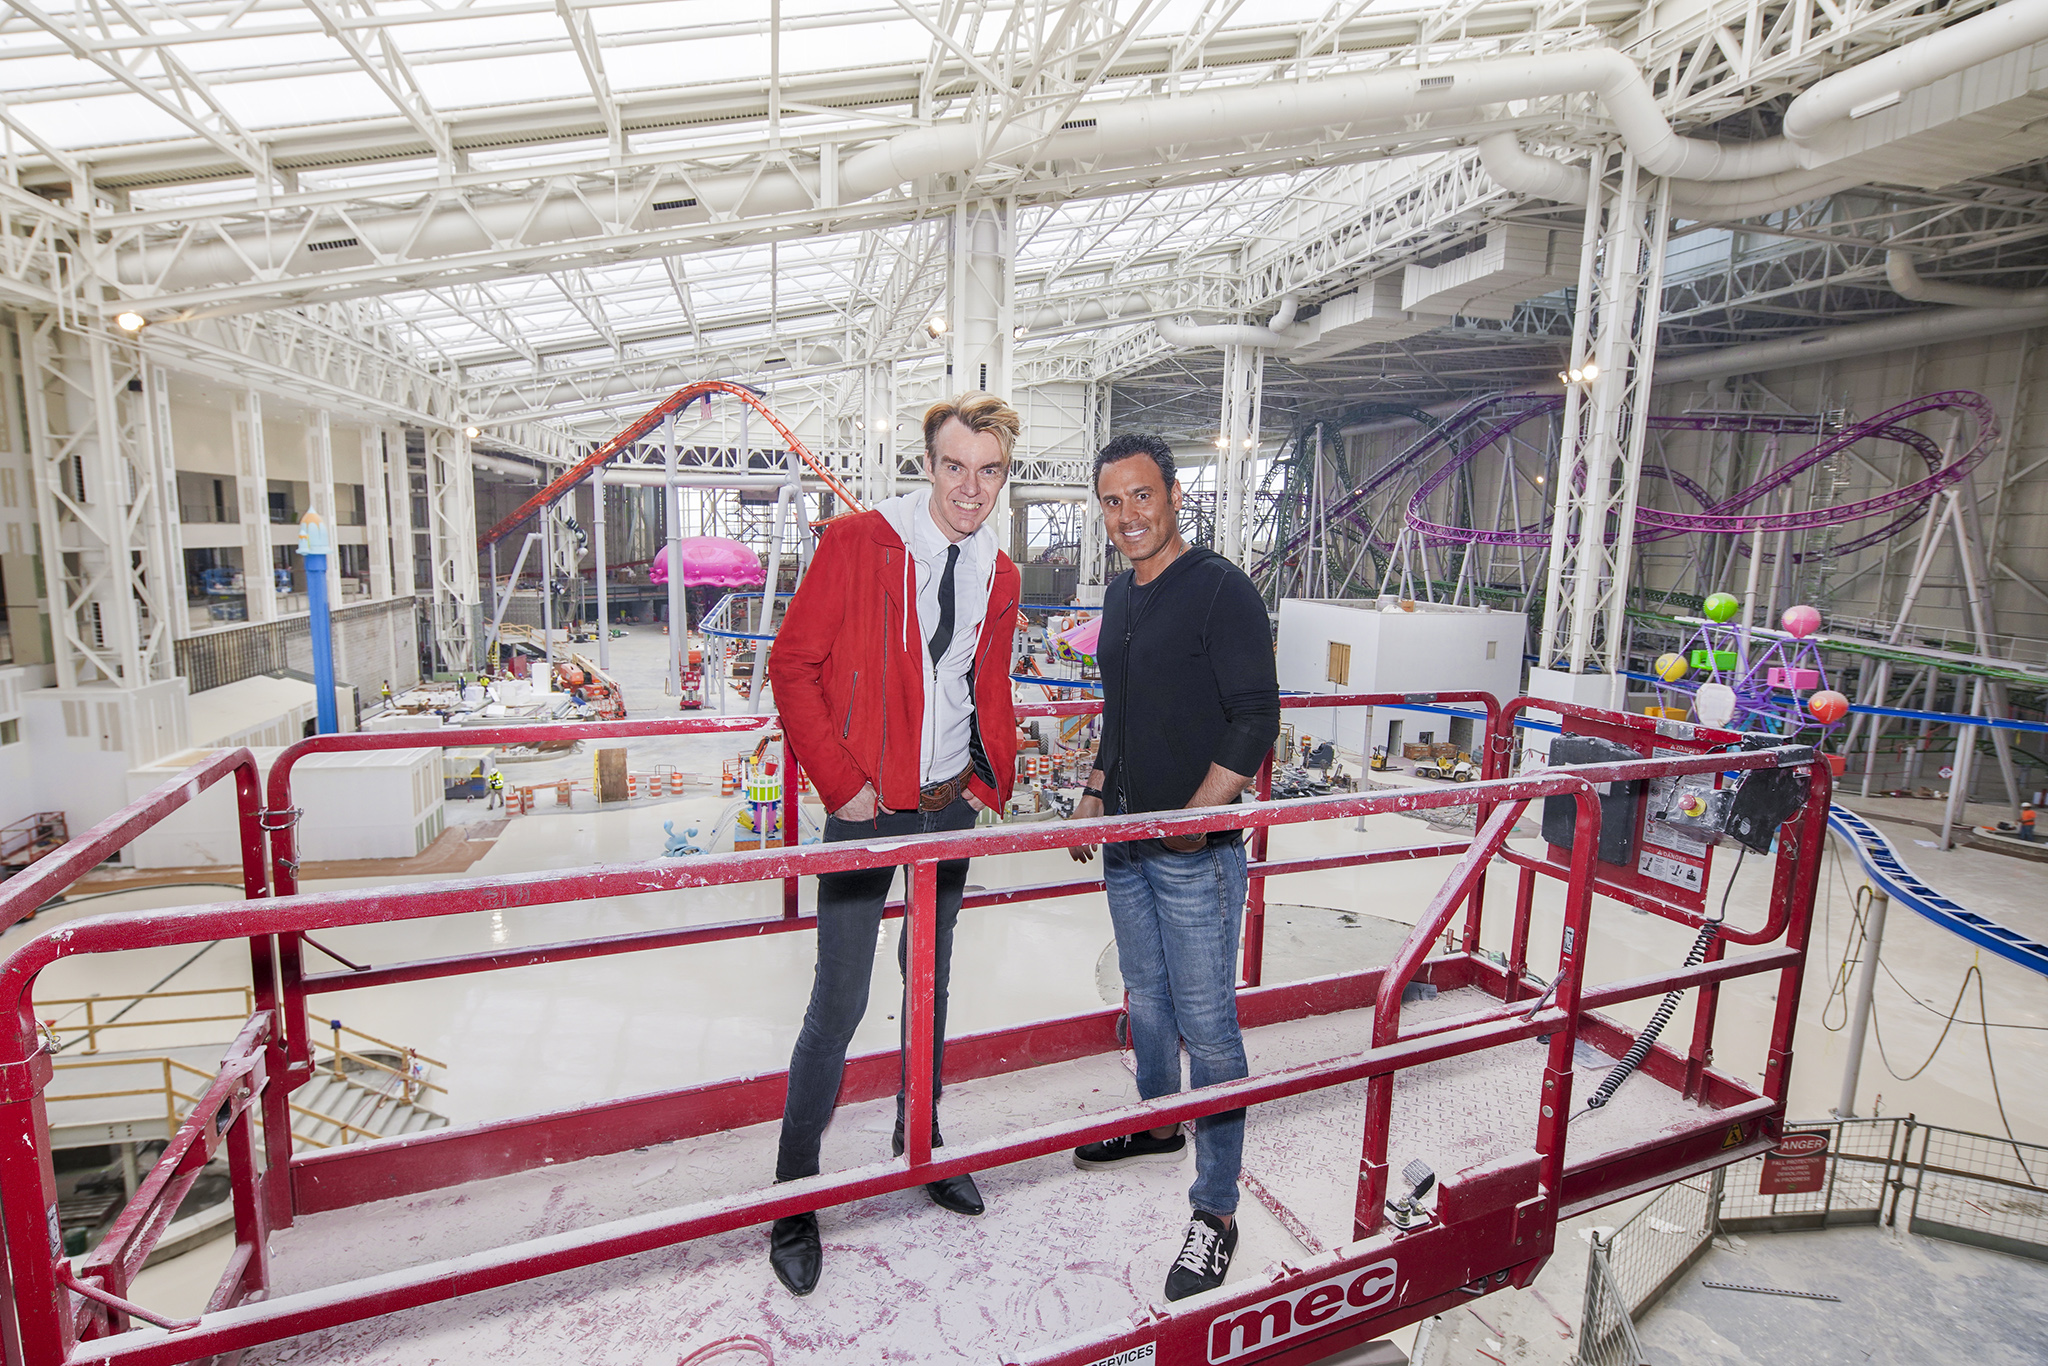 Ken Downing and Don Ghermezian with American Dream's Nickelodeon Universe Theme Park in the background.